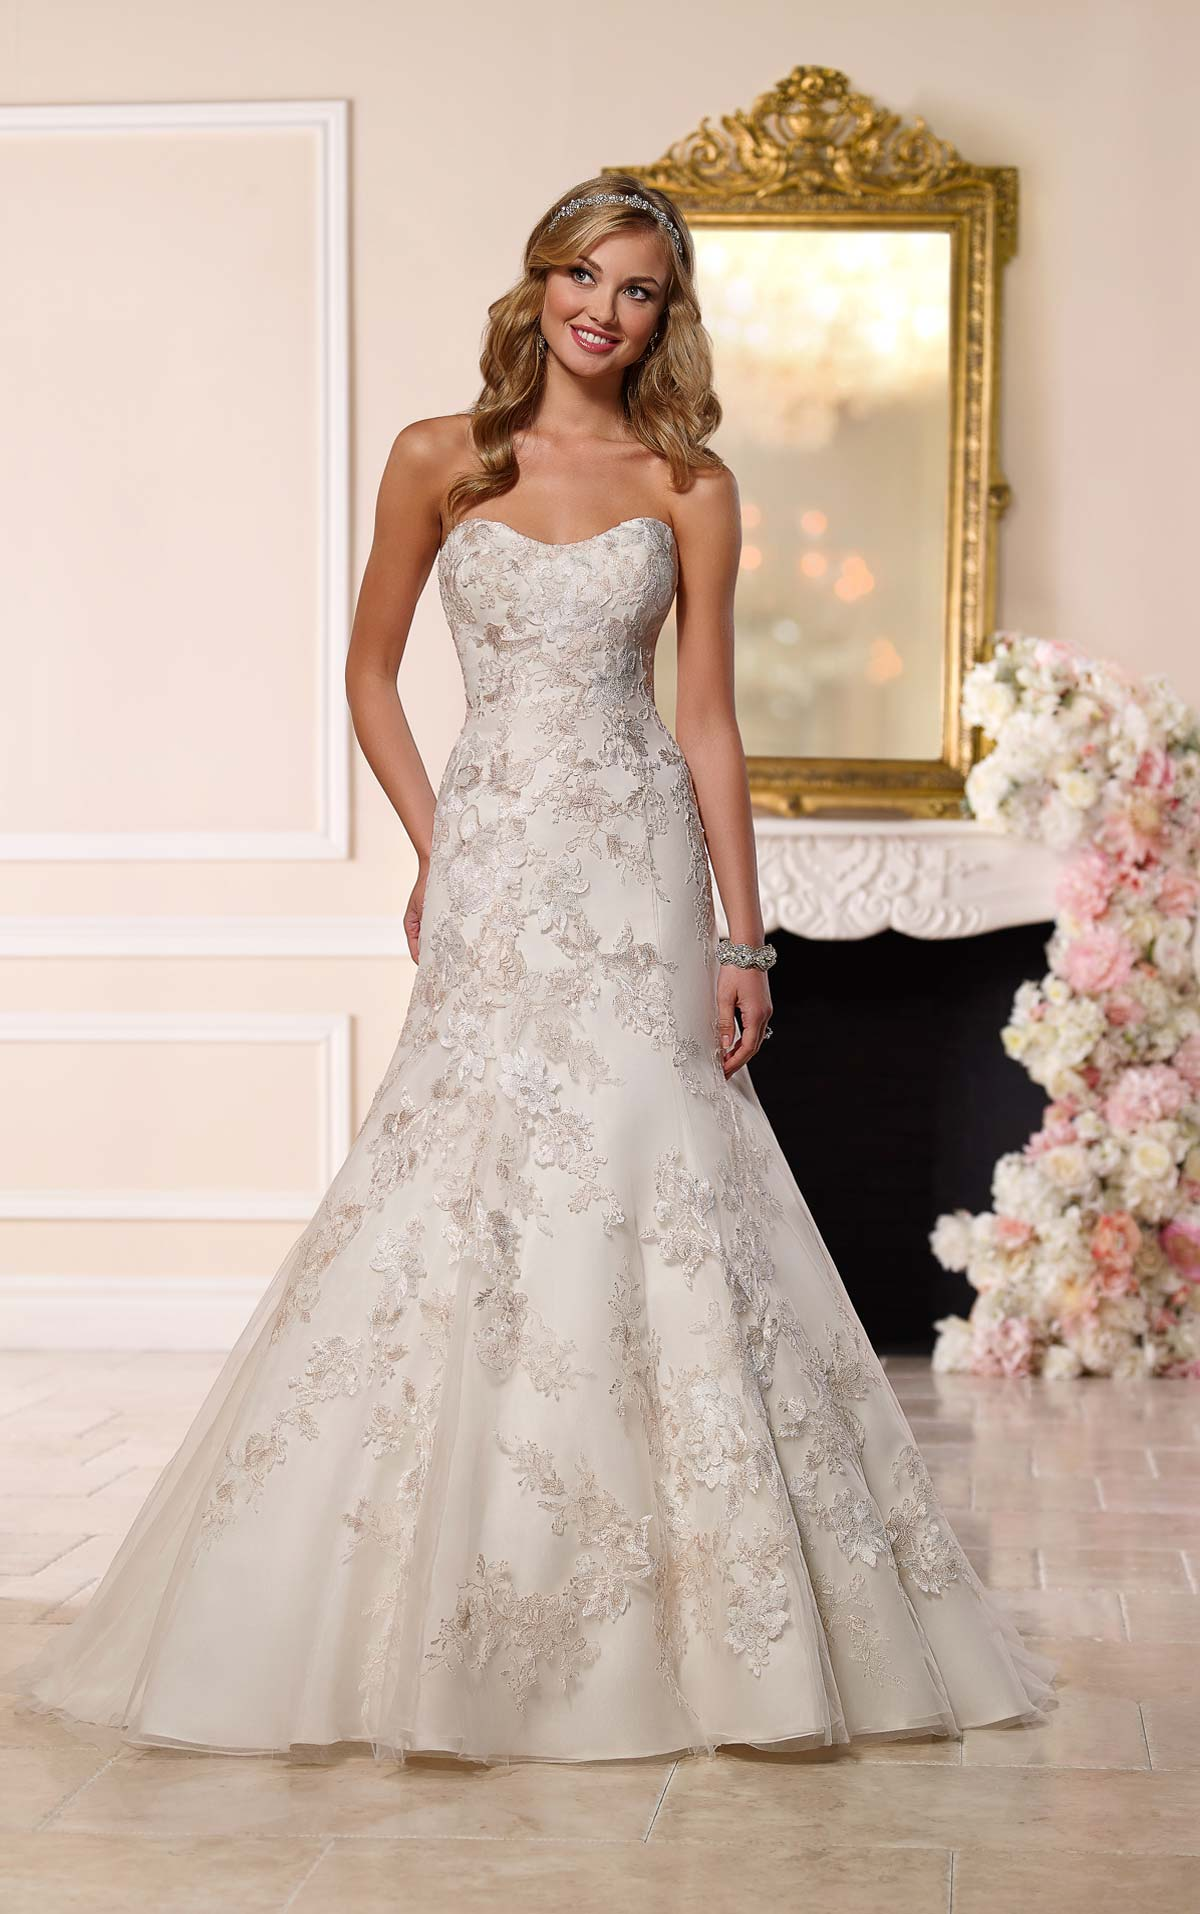 Lace Mermaid Gown In Kenya For Purchase Stella York Happy Wishy